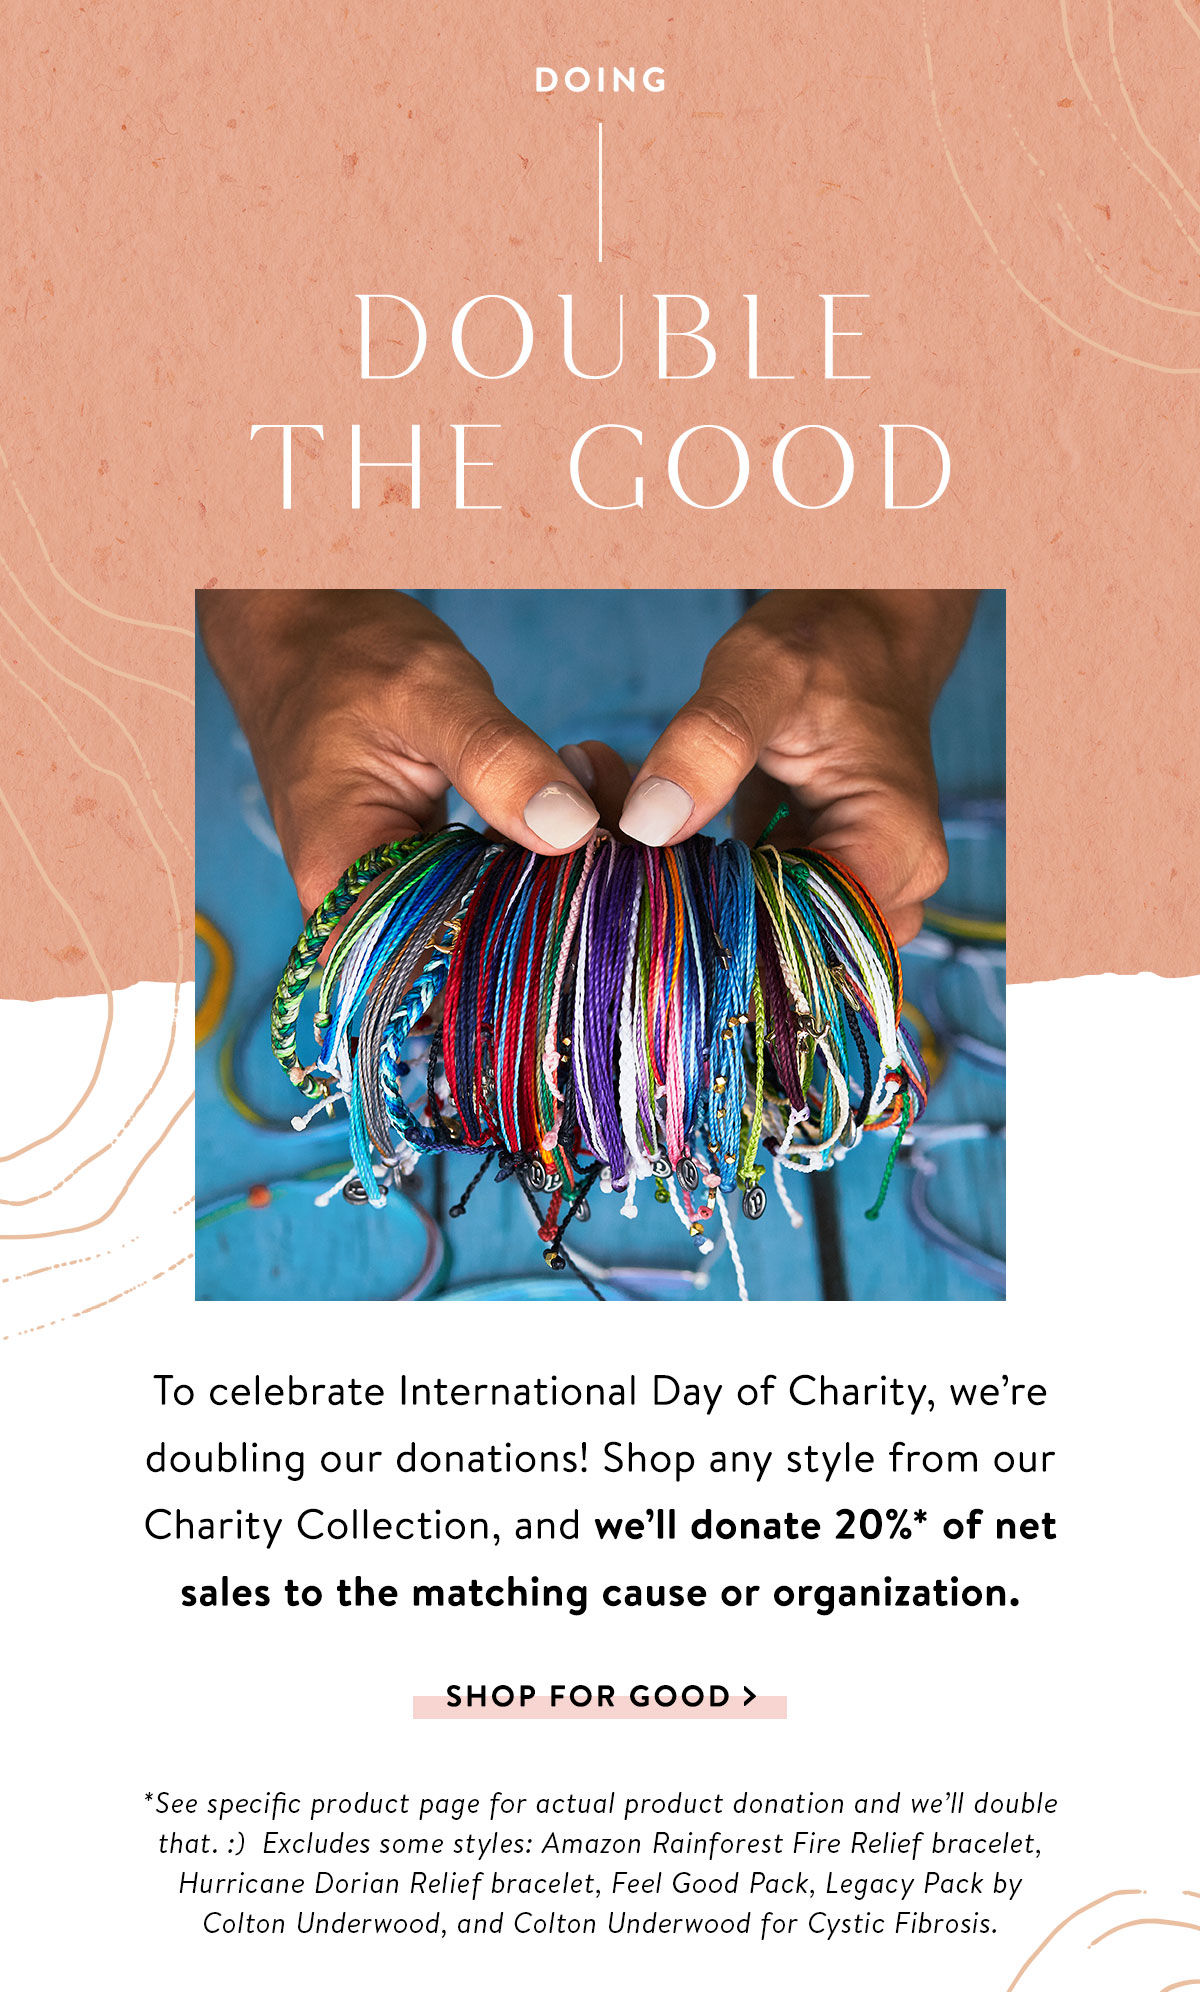 Doing Double the Good | SHOP FOR GOOD >